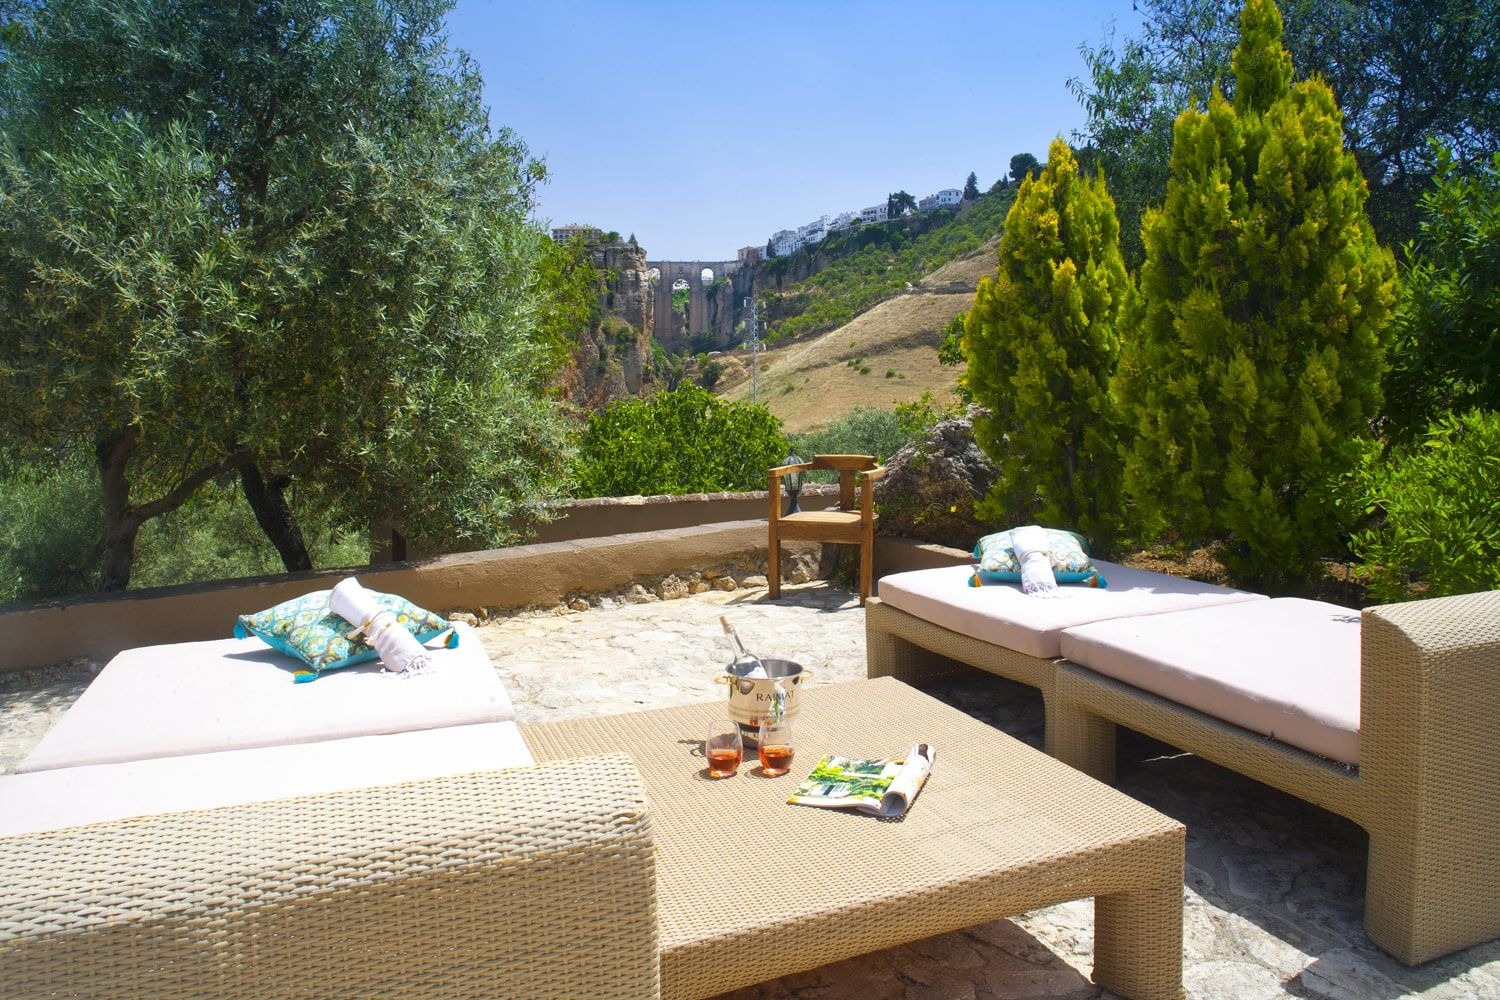 sunbathing with view of ronda